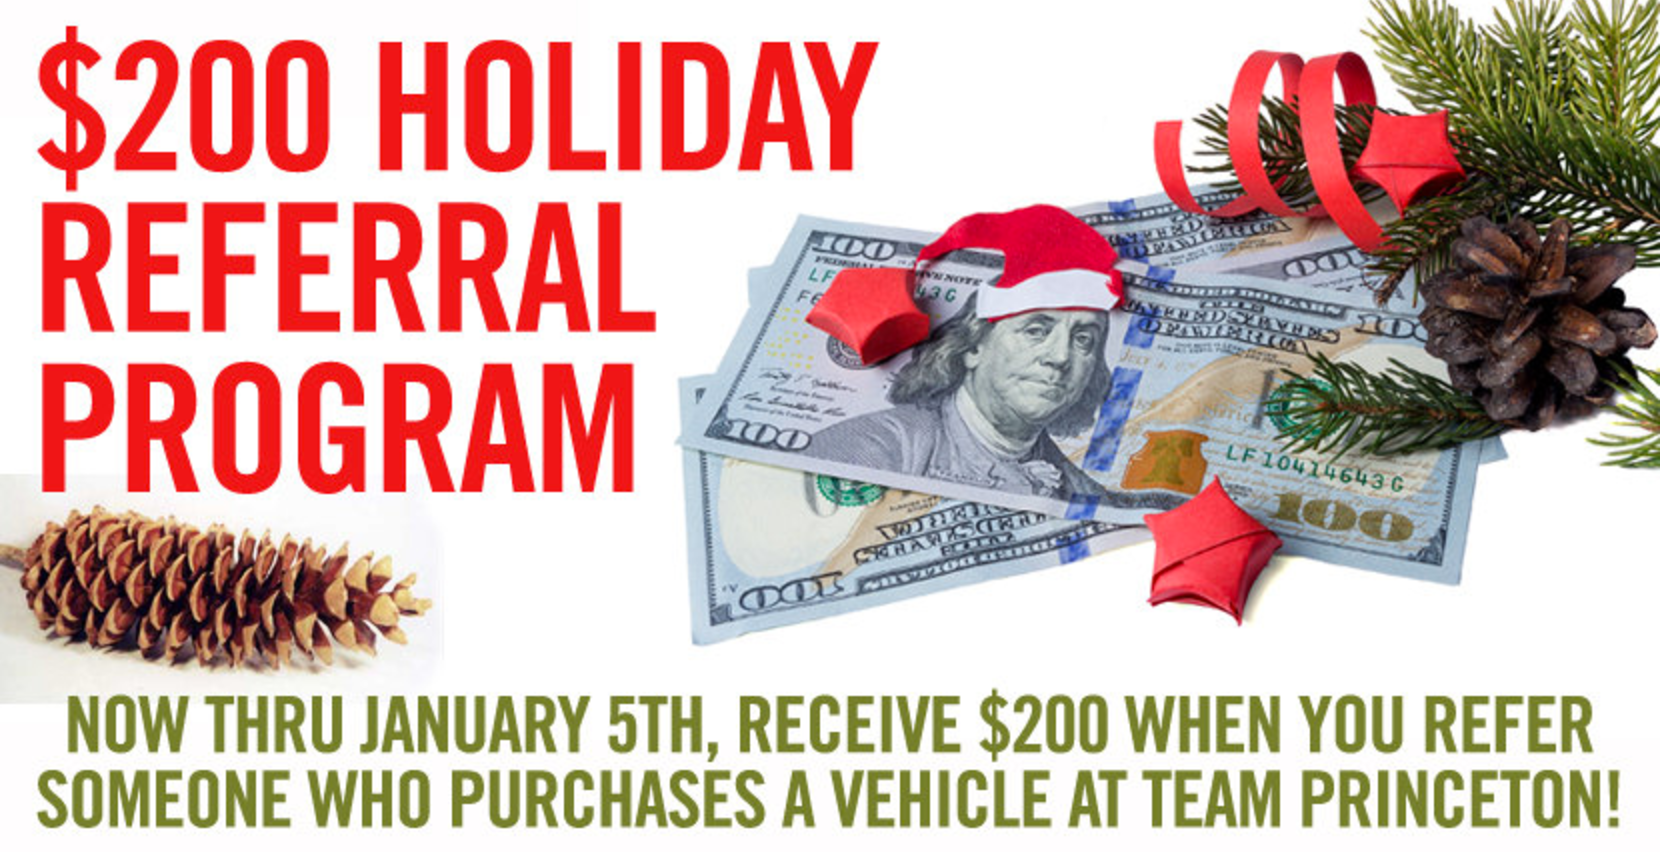 AHoliday referral